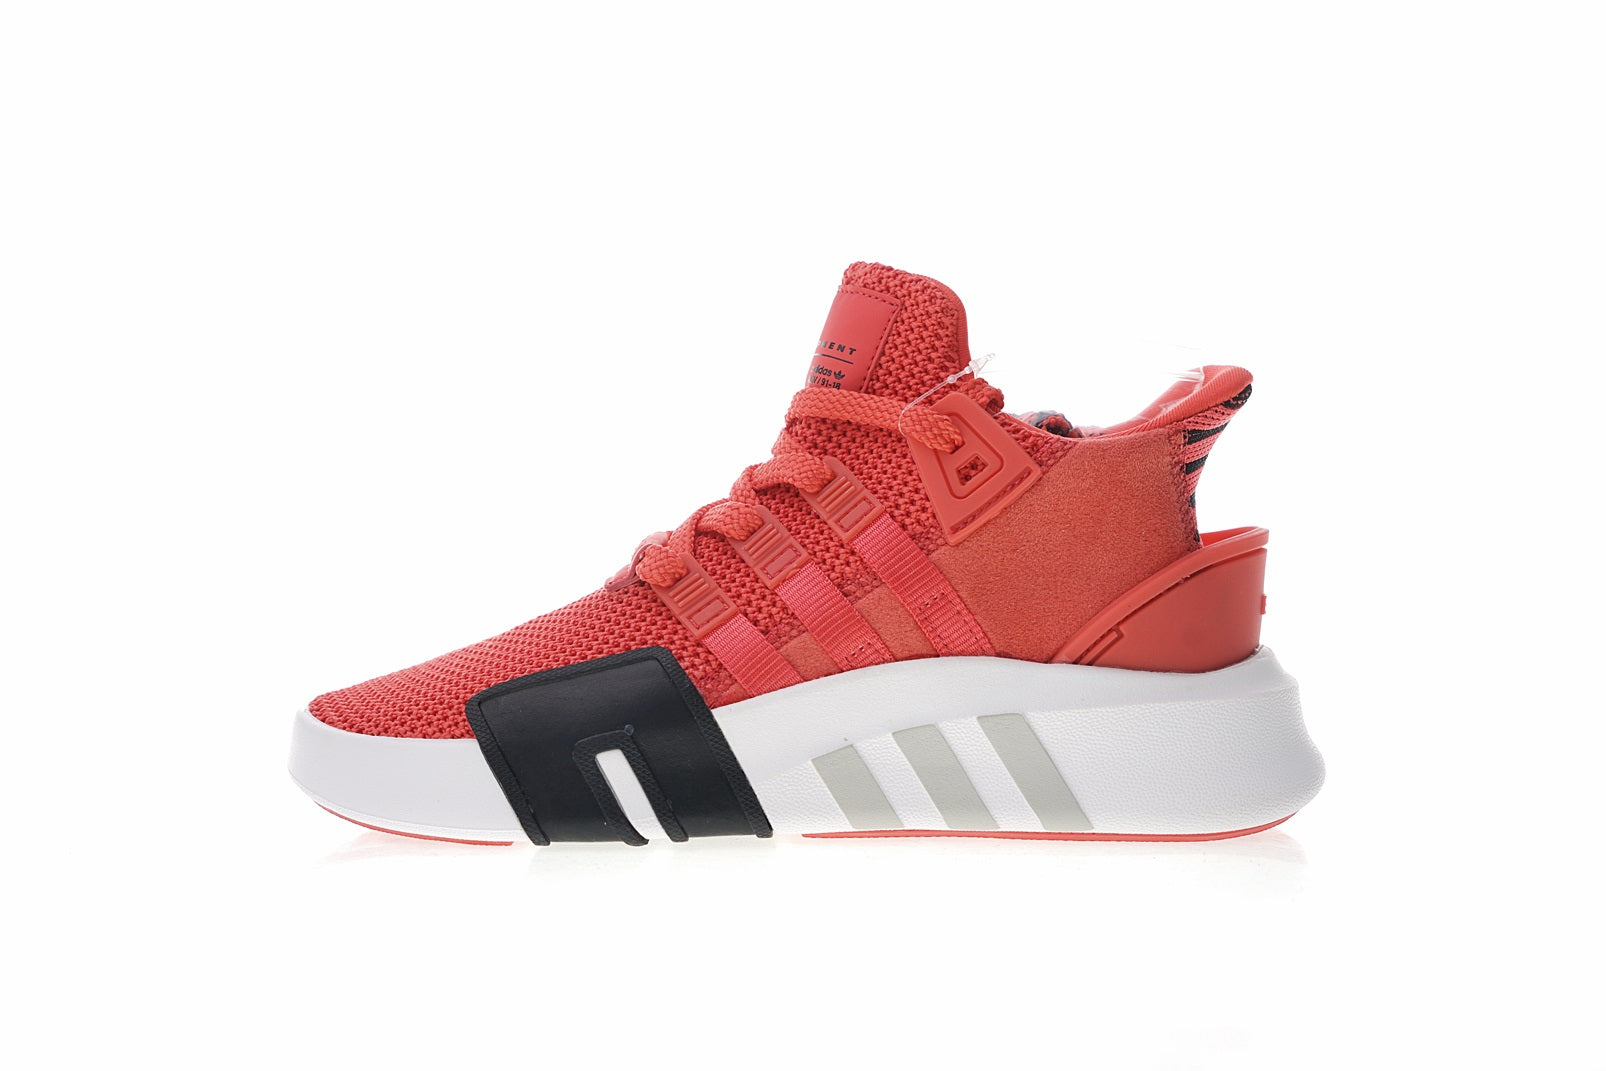 wholesale dealer 6d703 bdf22 Adidas EQT Bask Adv